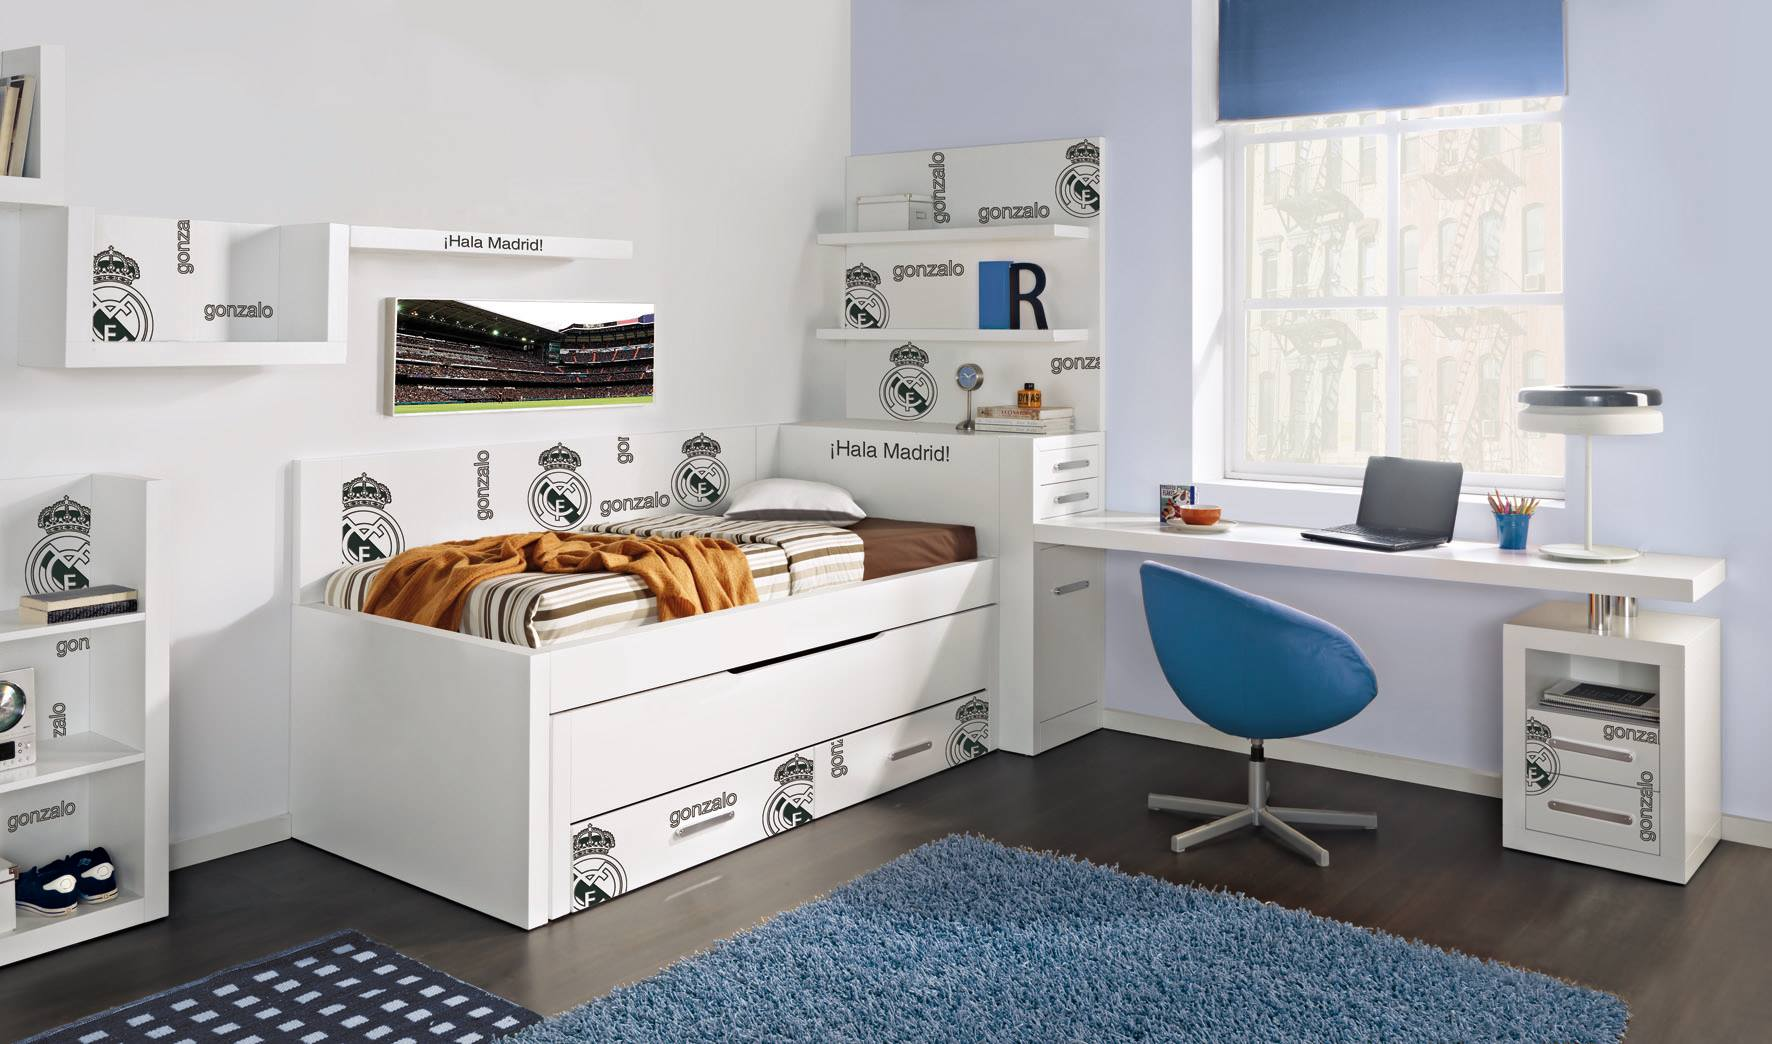 Lucama distribuidor oficial del dormitorio del real madrid for Muebles dormitorio madrid